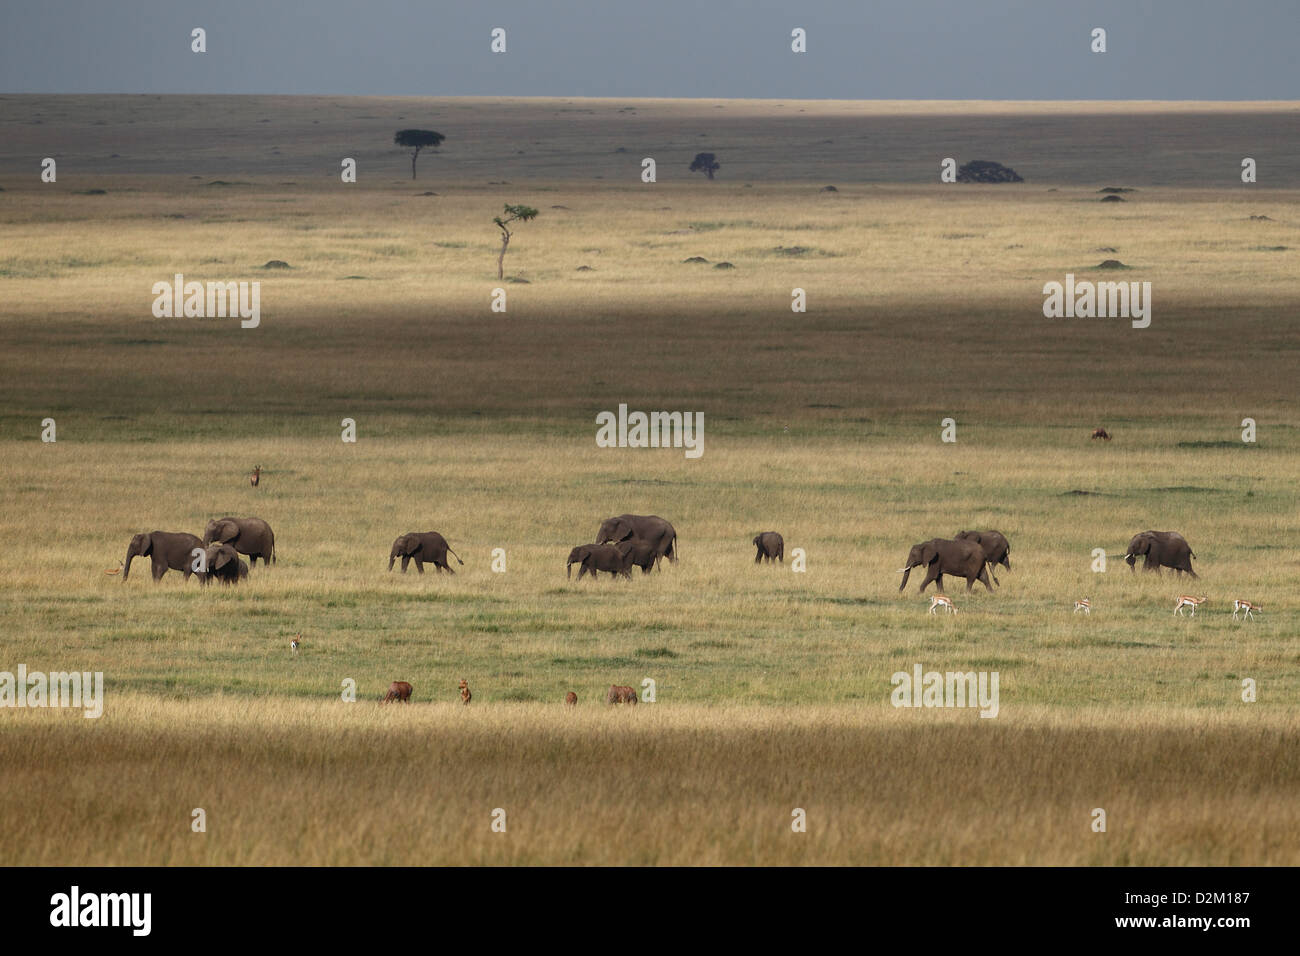 Herd of African elephants in the Masai Mara National Reserve, Kenya. Nice scenery. on open Masai Mara plains. - Stock Image